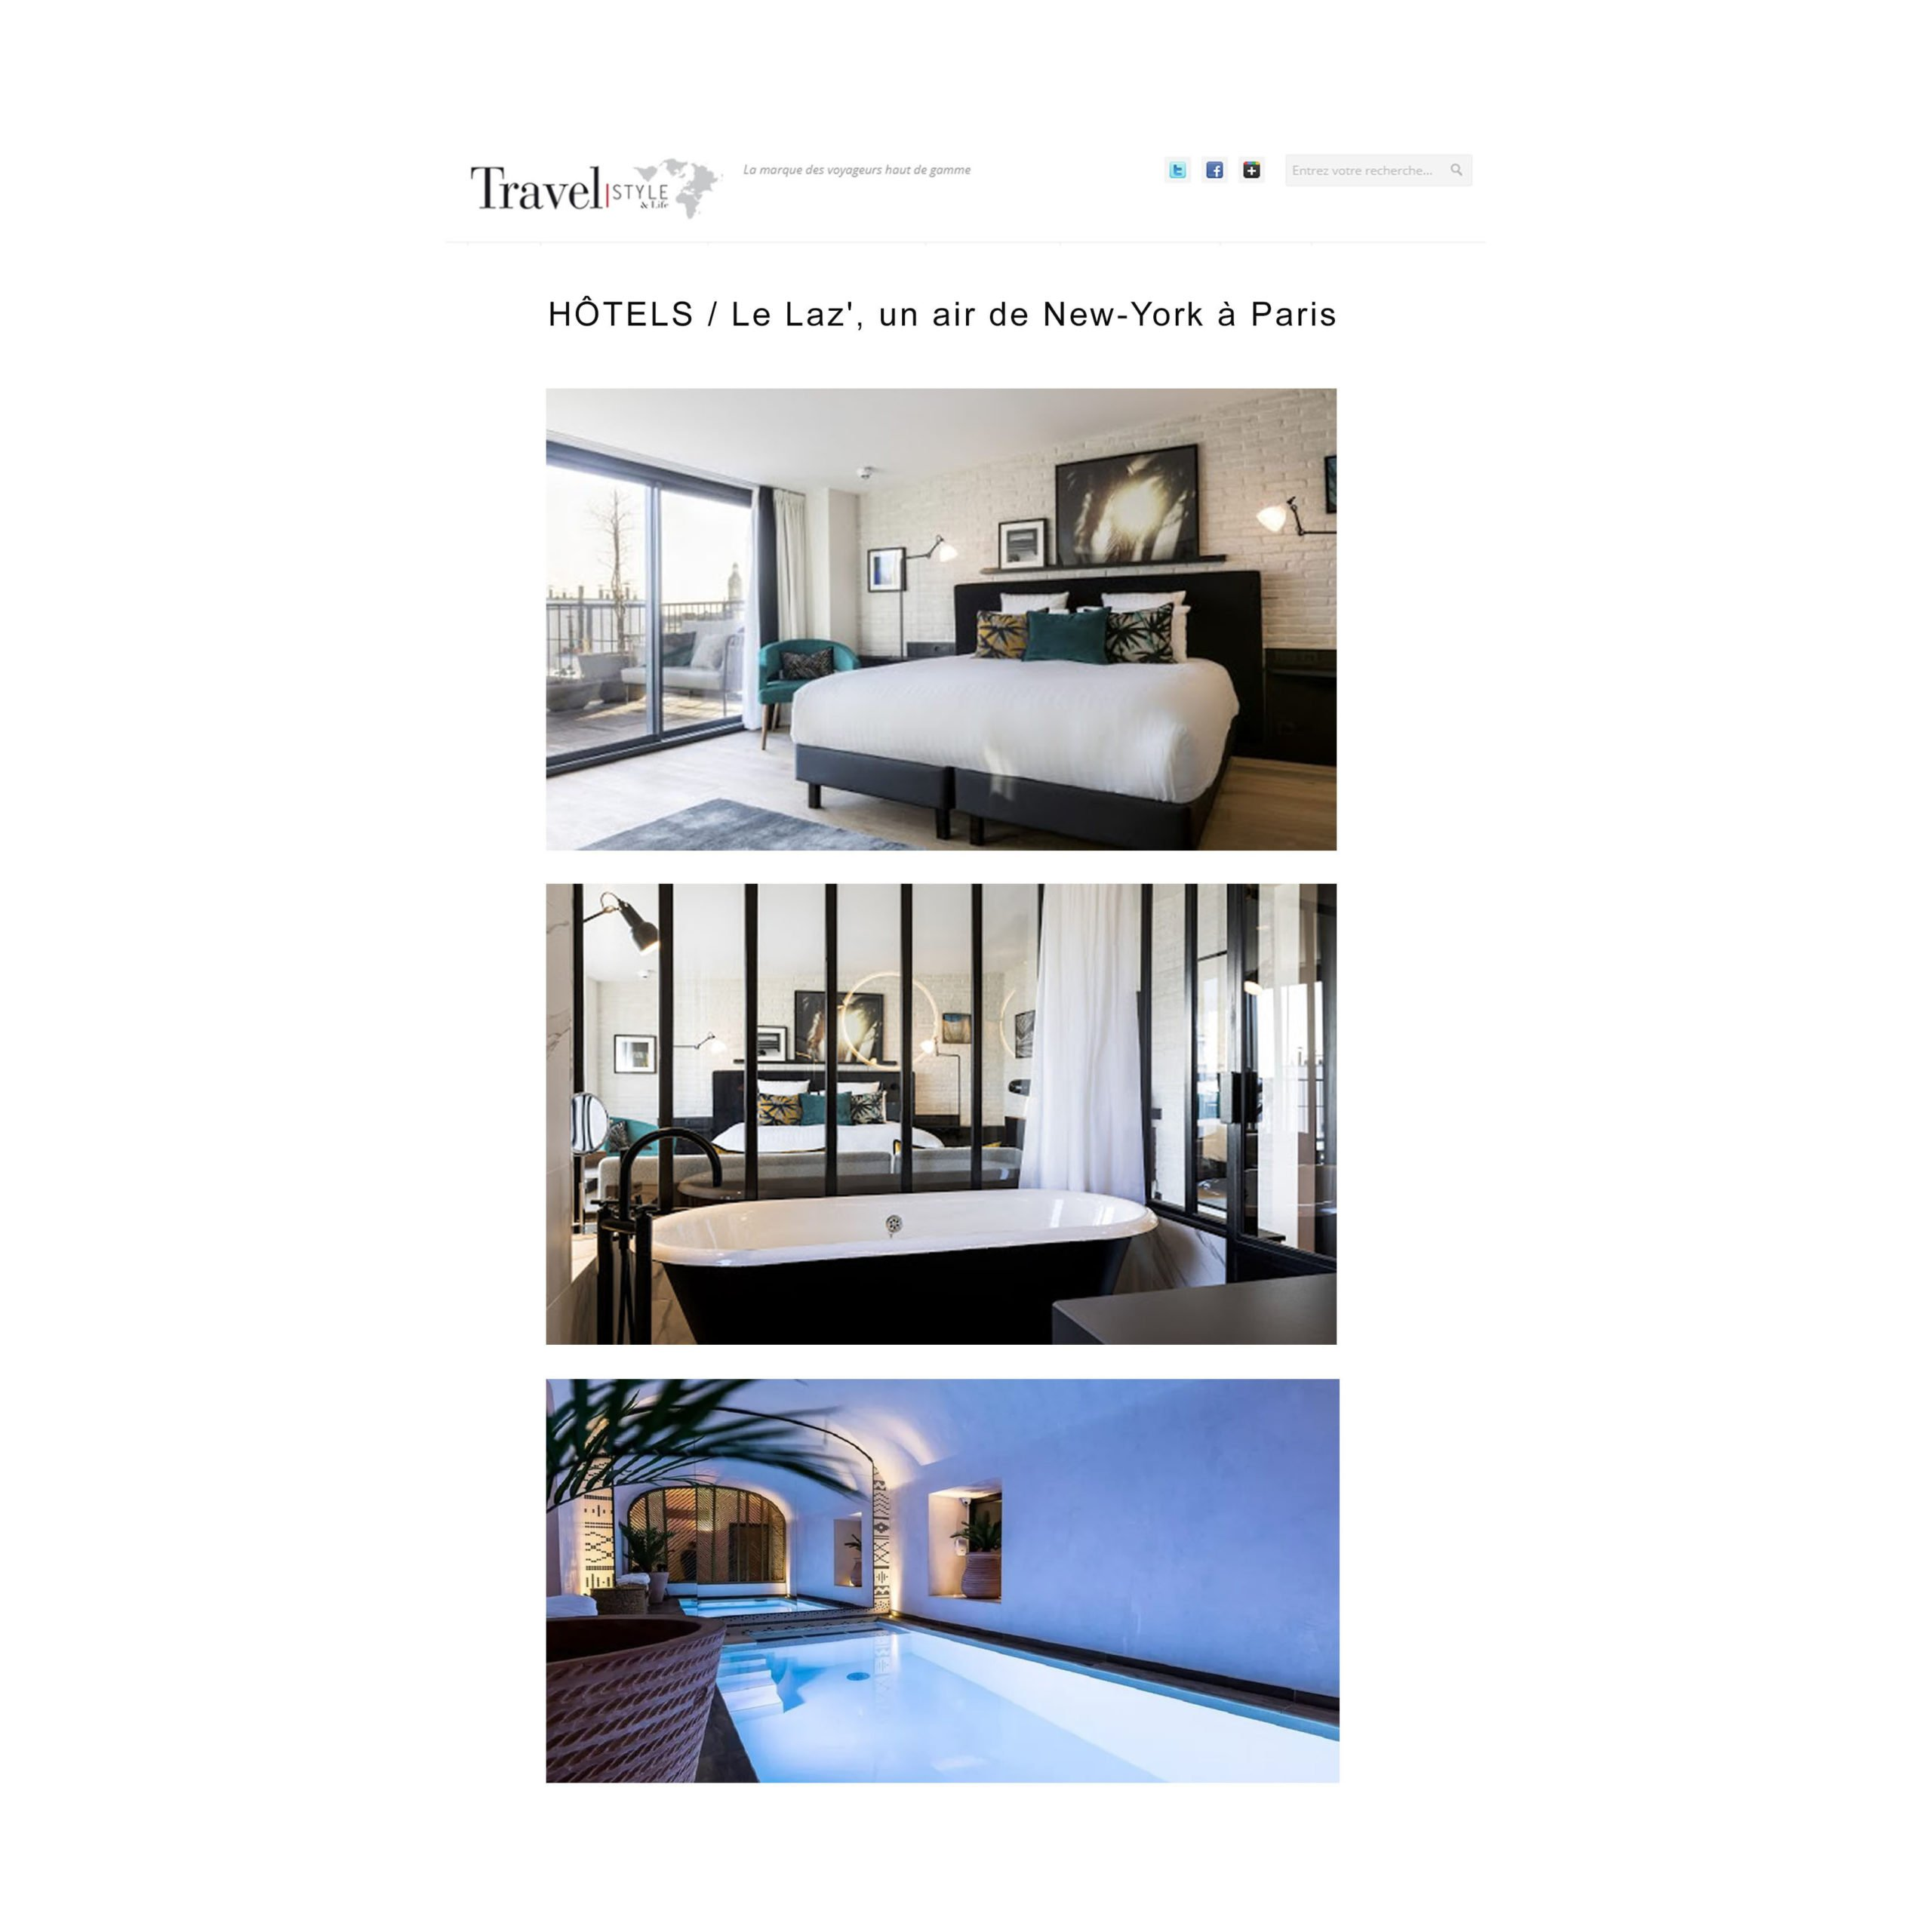 PRESSE TRAVEL STYLE Article HOTEL 4 etoiles stephanie cayet architecture interieure design